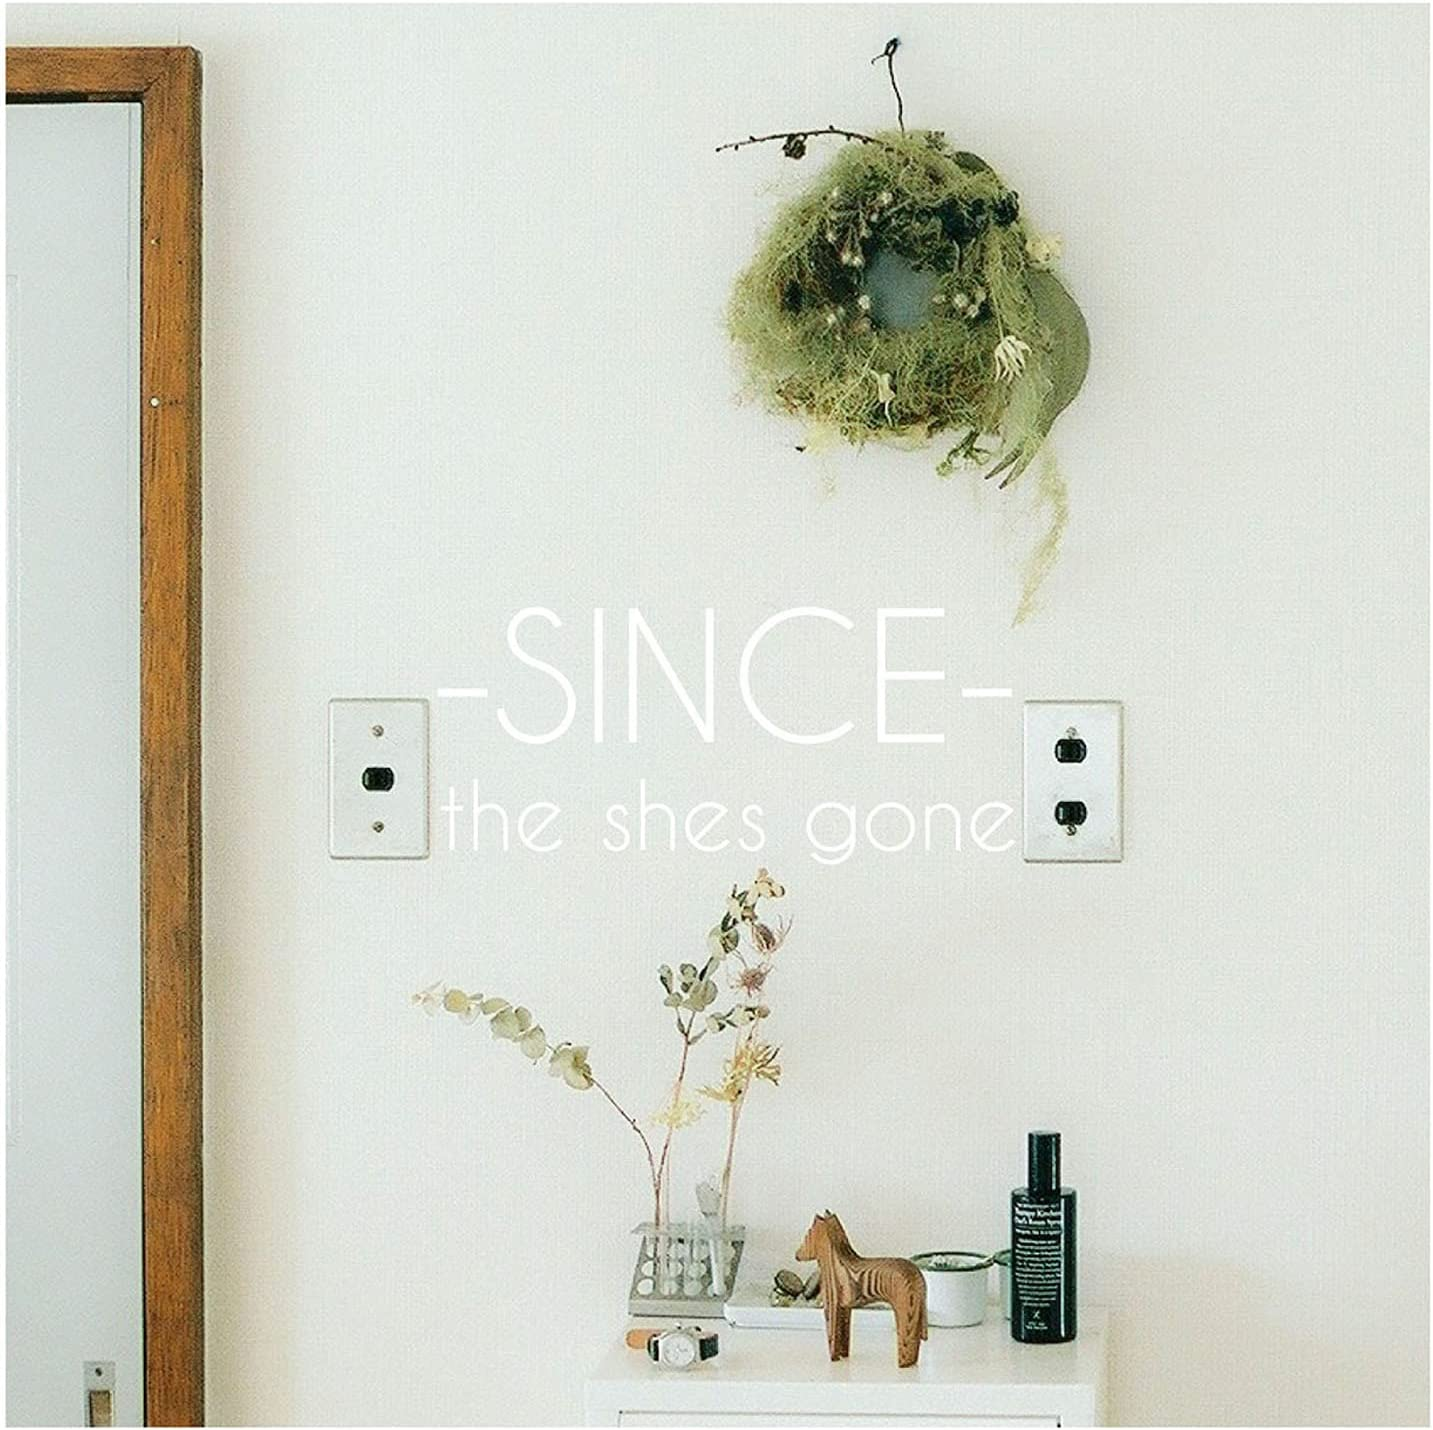 [Album] the shes gone – SINCE [FLAC + MP3 320 / WEB]